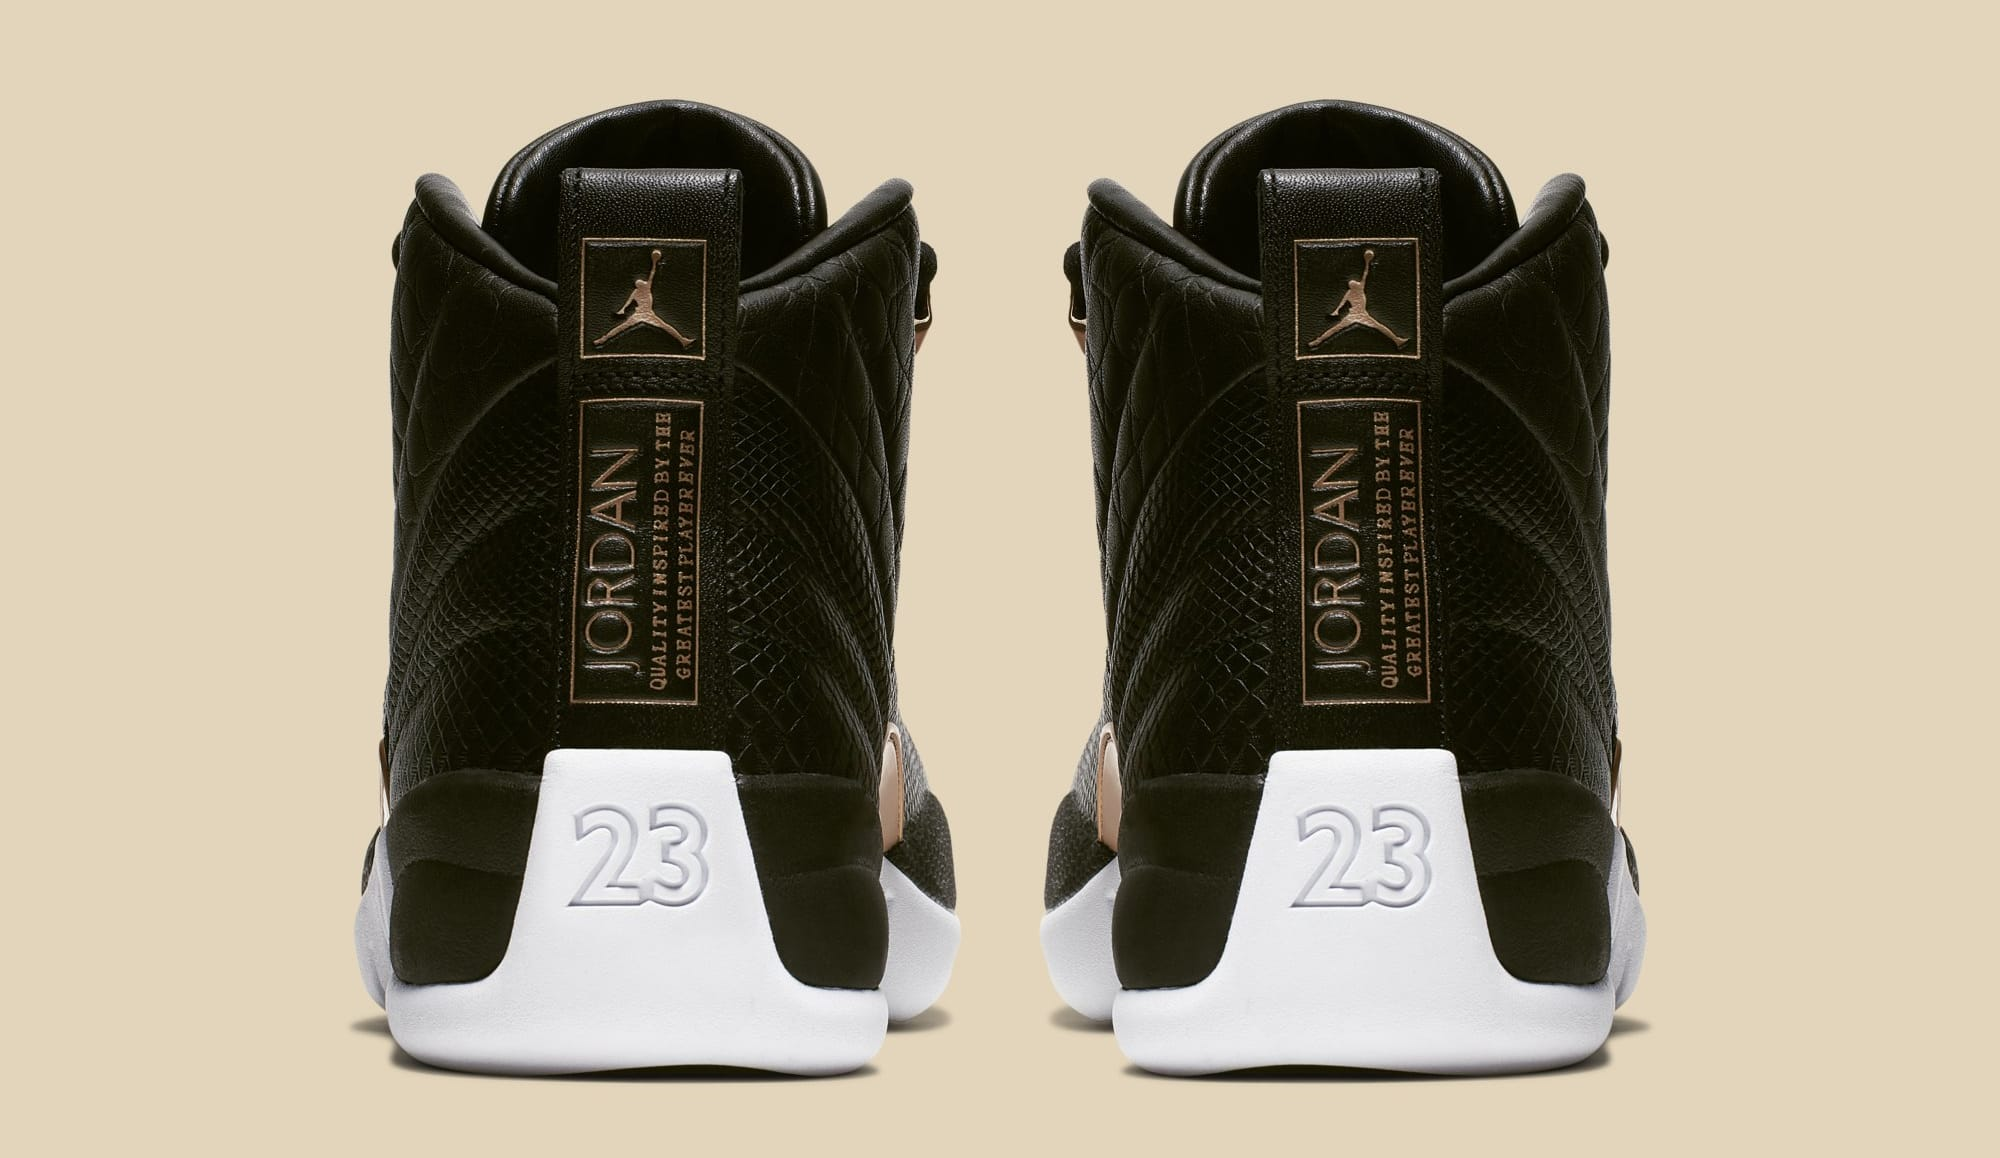 25846602699f Image via Nike WMNS Air Jordan 12  Black Metallic Gold-White  AO6068-007 (